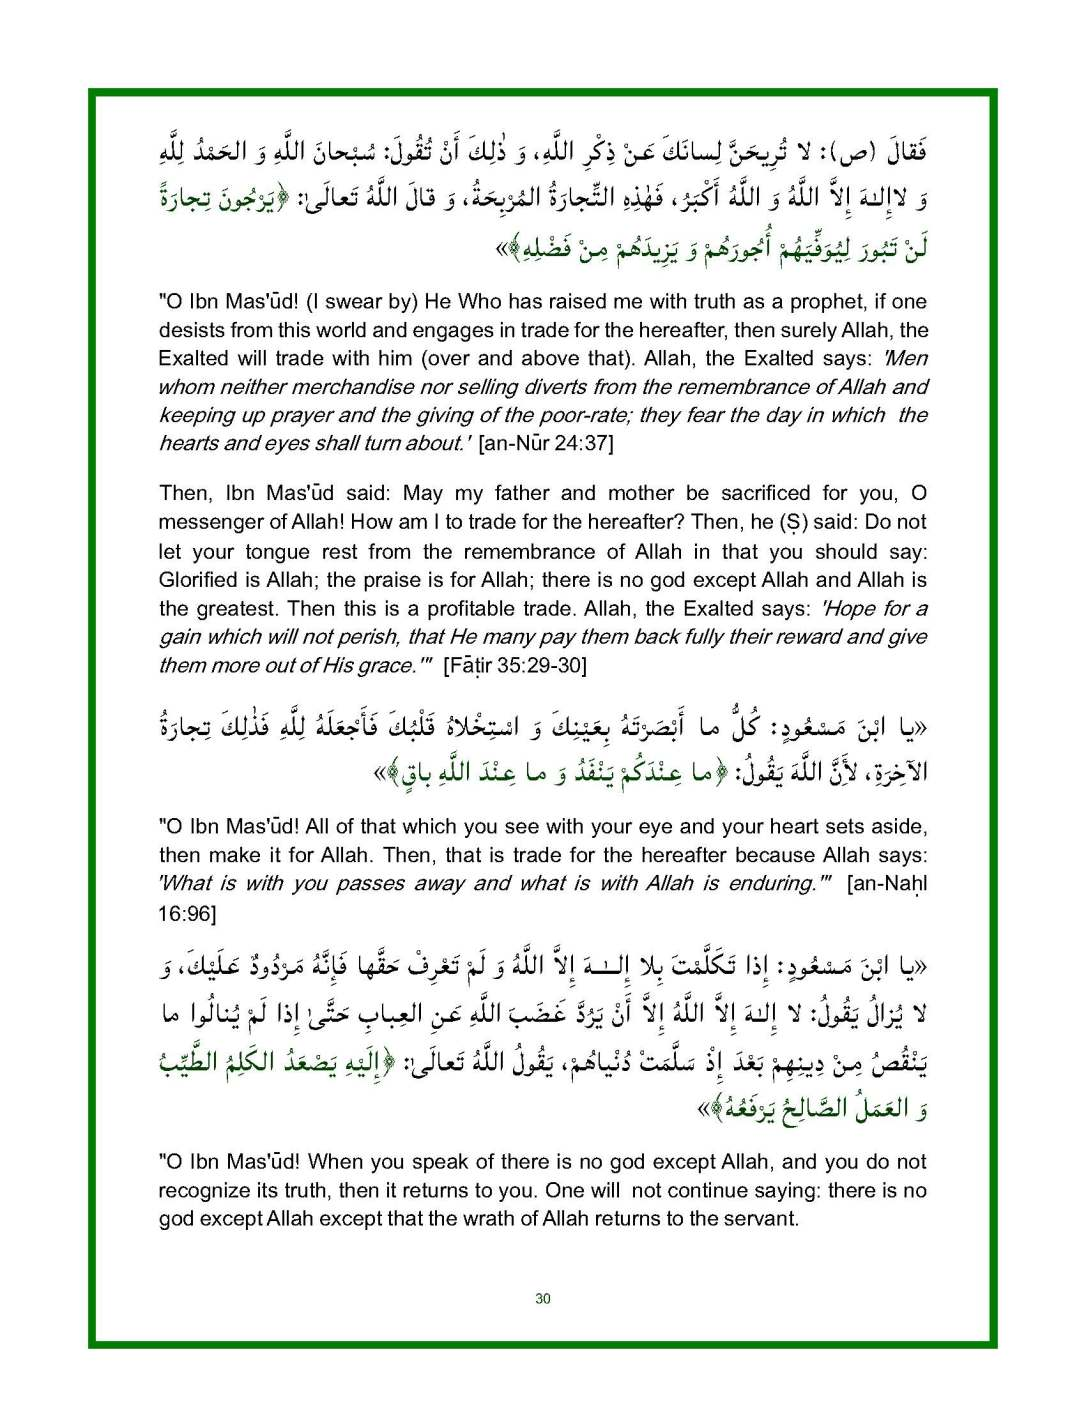 Spiritual-Advice-of-the-Messenger-of-Allah-for-Ibn-Masud-unlocked_Page_30